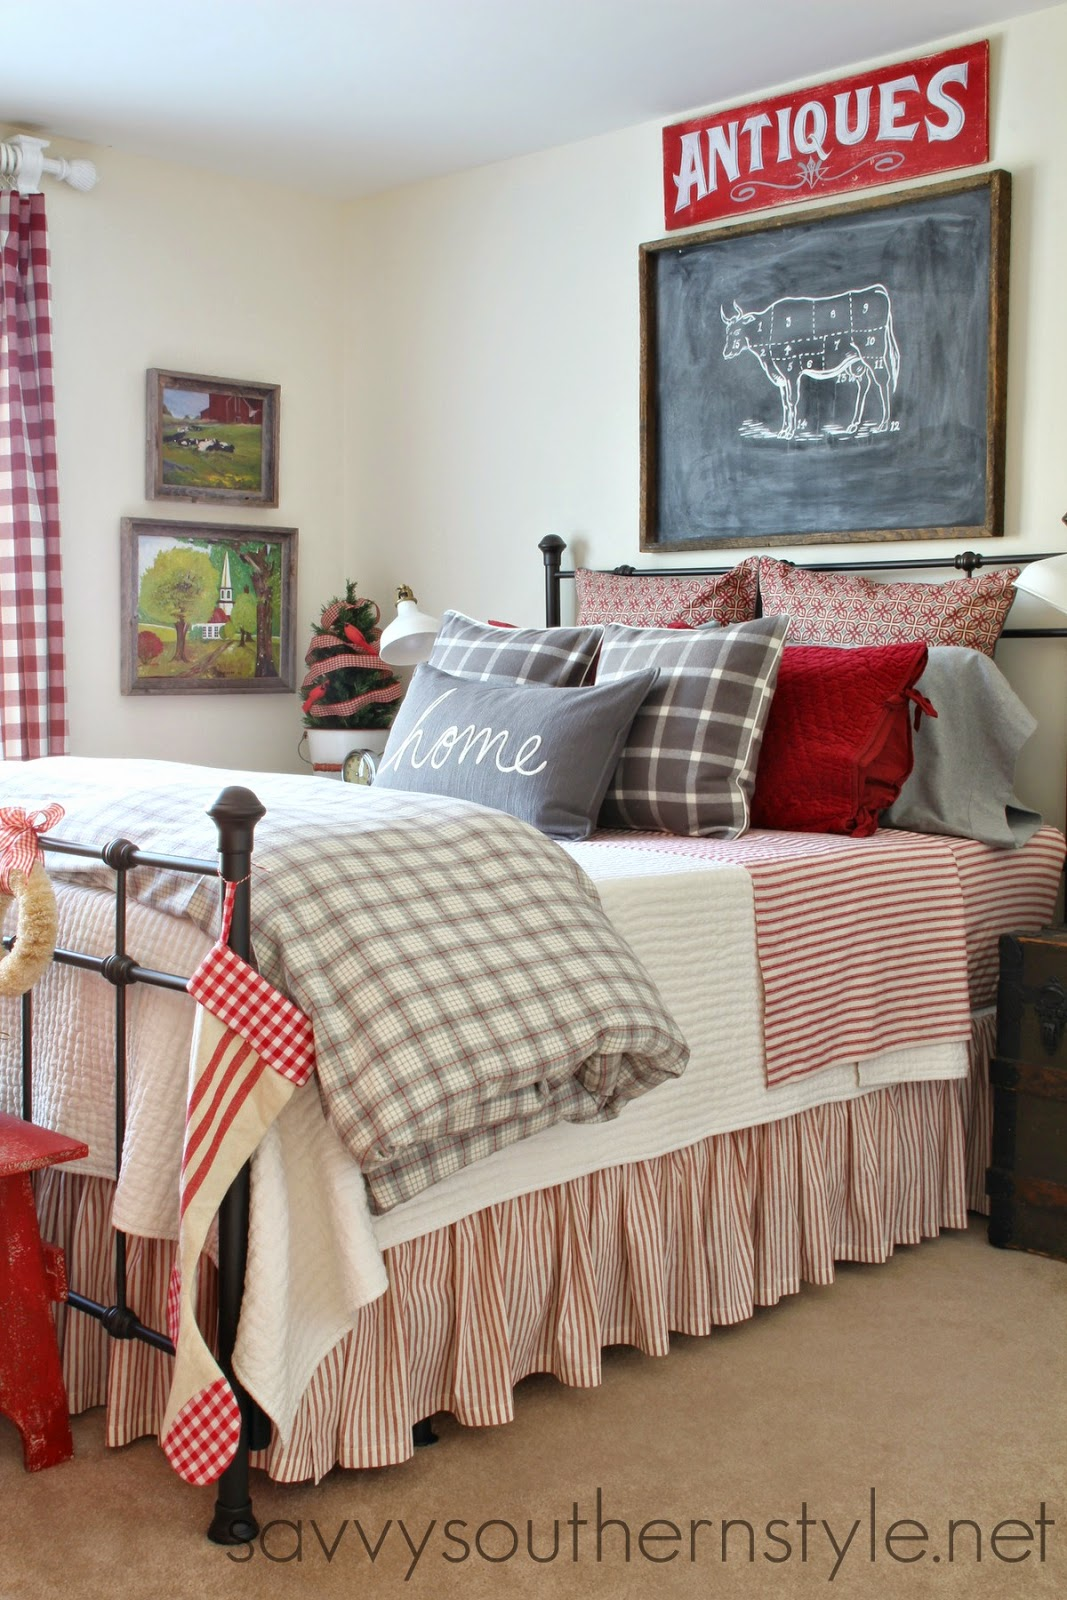 Savvy southern style farmhouse guest room christmas for Farmhouse guest bedroom